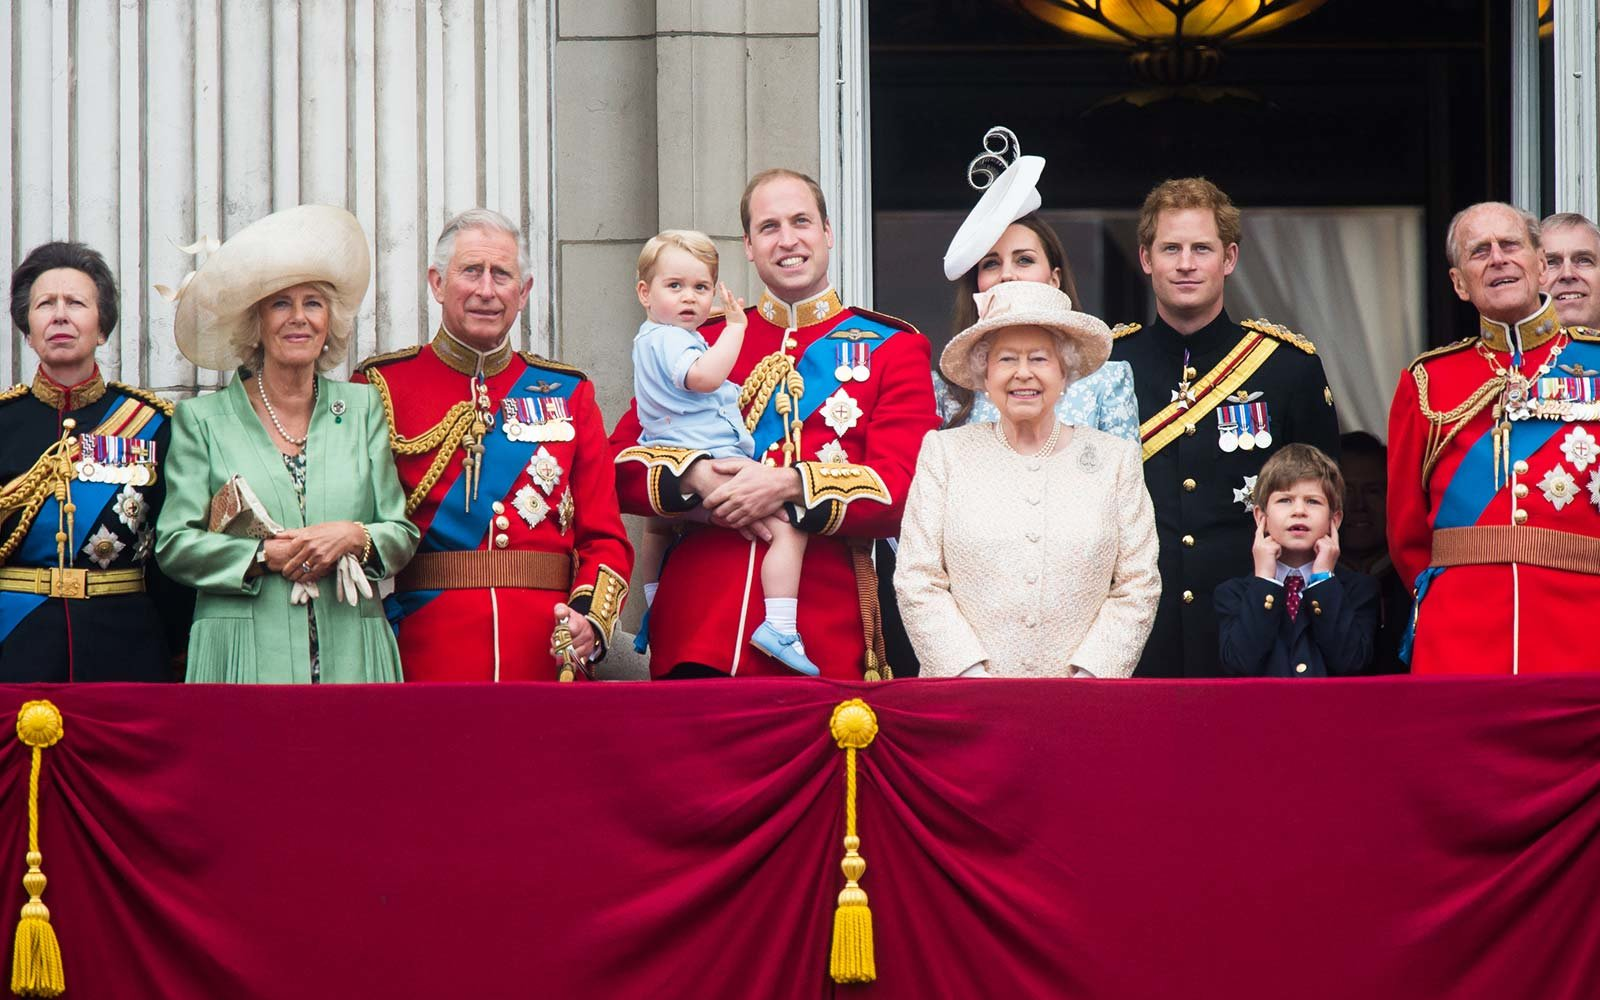 LONDON, ENGLAND - JUNE 13: (L-R) Princess Anne, Princess Royal, Camilla, Duchess of Cornwall, Prince Charles, Prince of Wales, Prince George of Cambridge, Prince William, Duke of Cambridge Catherine, Duchess of Cambridge, Queen Elizabeth II, Prince Harry, Prince Philip, Duke of Edinburgh and Prince Andew, Duke of York look on from the balcony during the annual Trooping The Colour ceremony at Horse Guards Parade on June 13, 2015 in London, England.